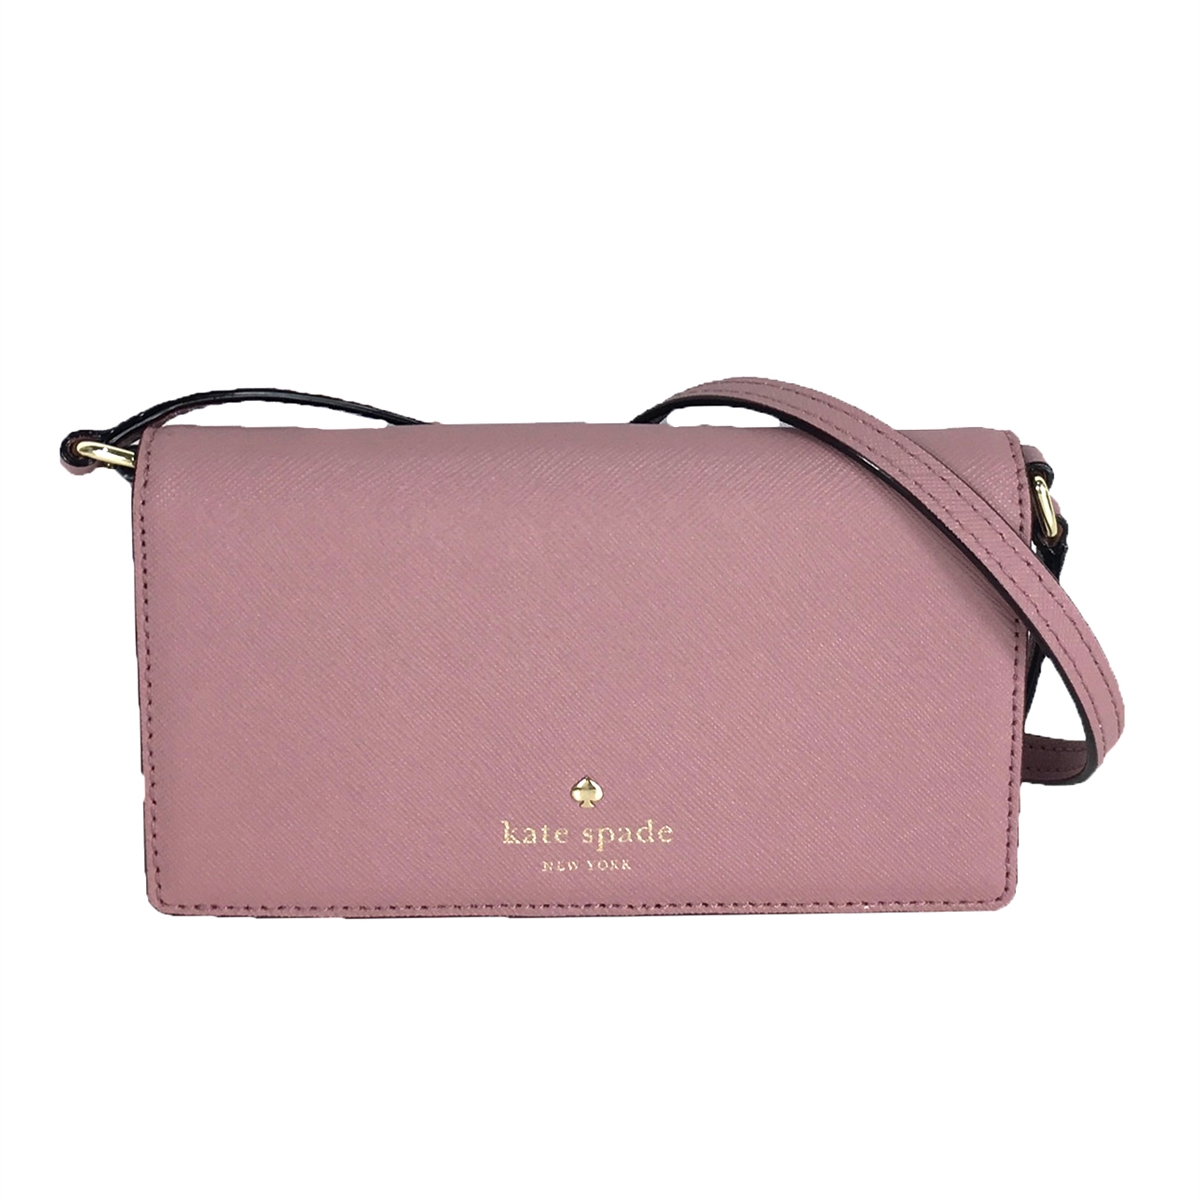 Kate Spade Saffiano Leather iPhone 8 7 6 Wallet Crossbody ac0a05fbf02a9